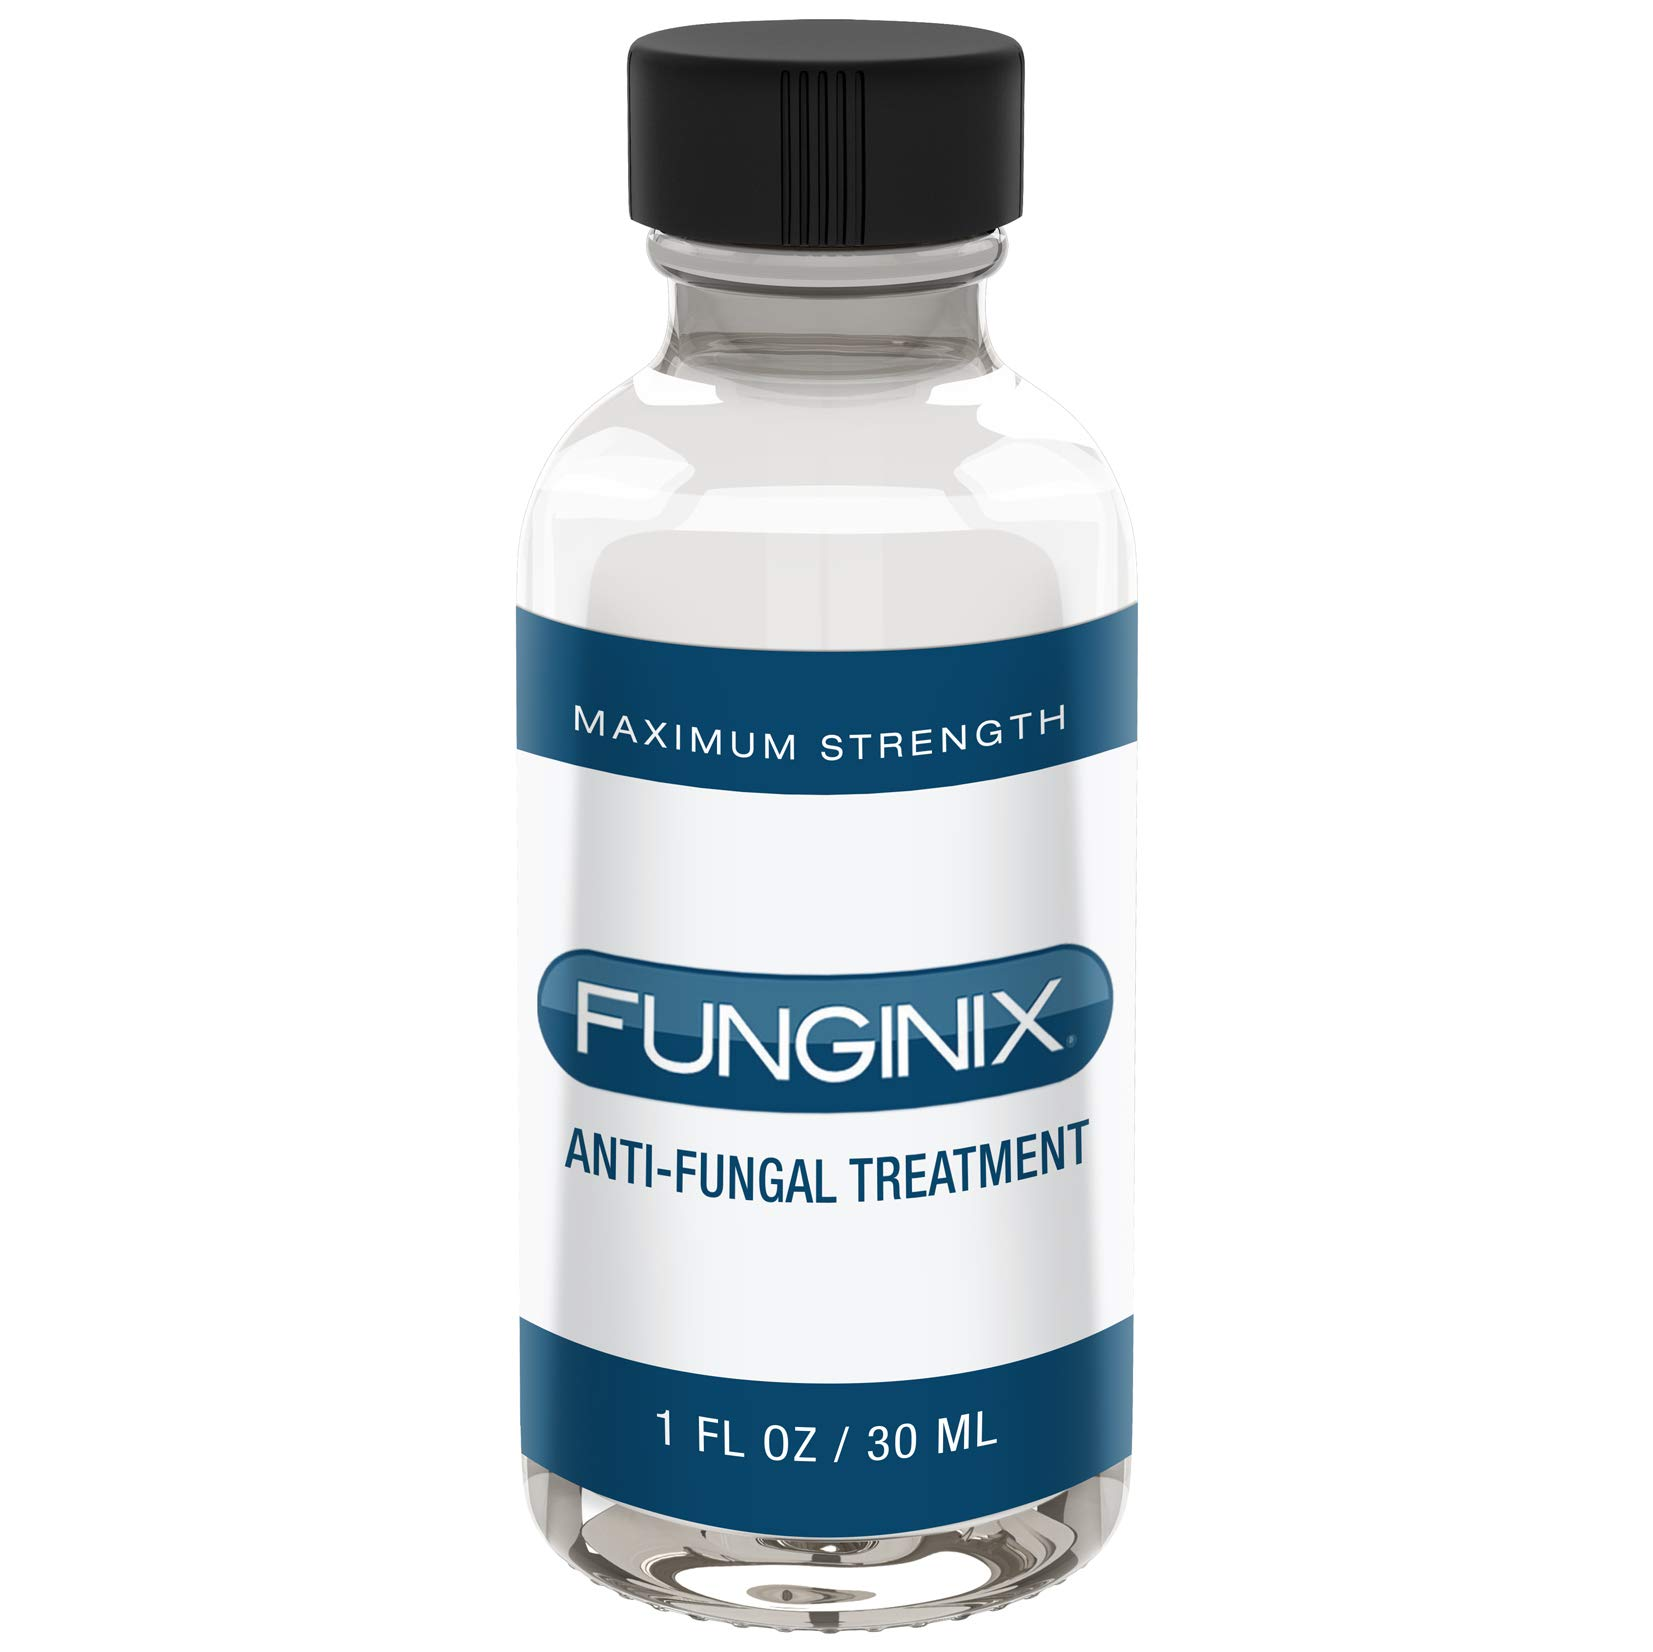 FUNGINIX Finger and Toe Fungus Treatment - Maximum Strength Anti-Fungal Solution, Eliminate Fungal Infections, Powerful & Effective (1 Fluid Ounce) by FUNGINIX